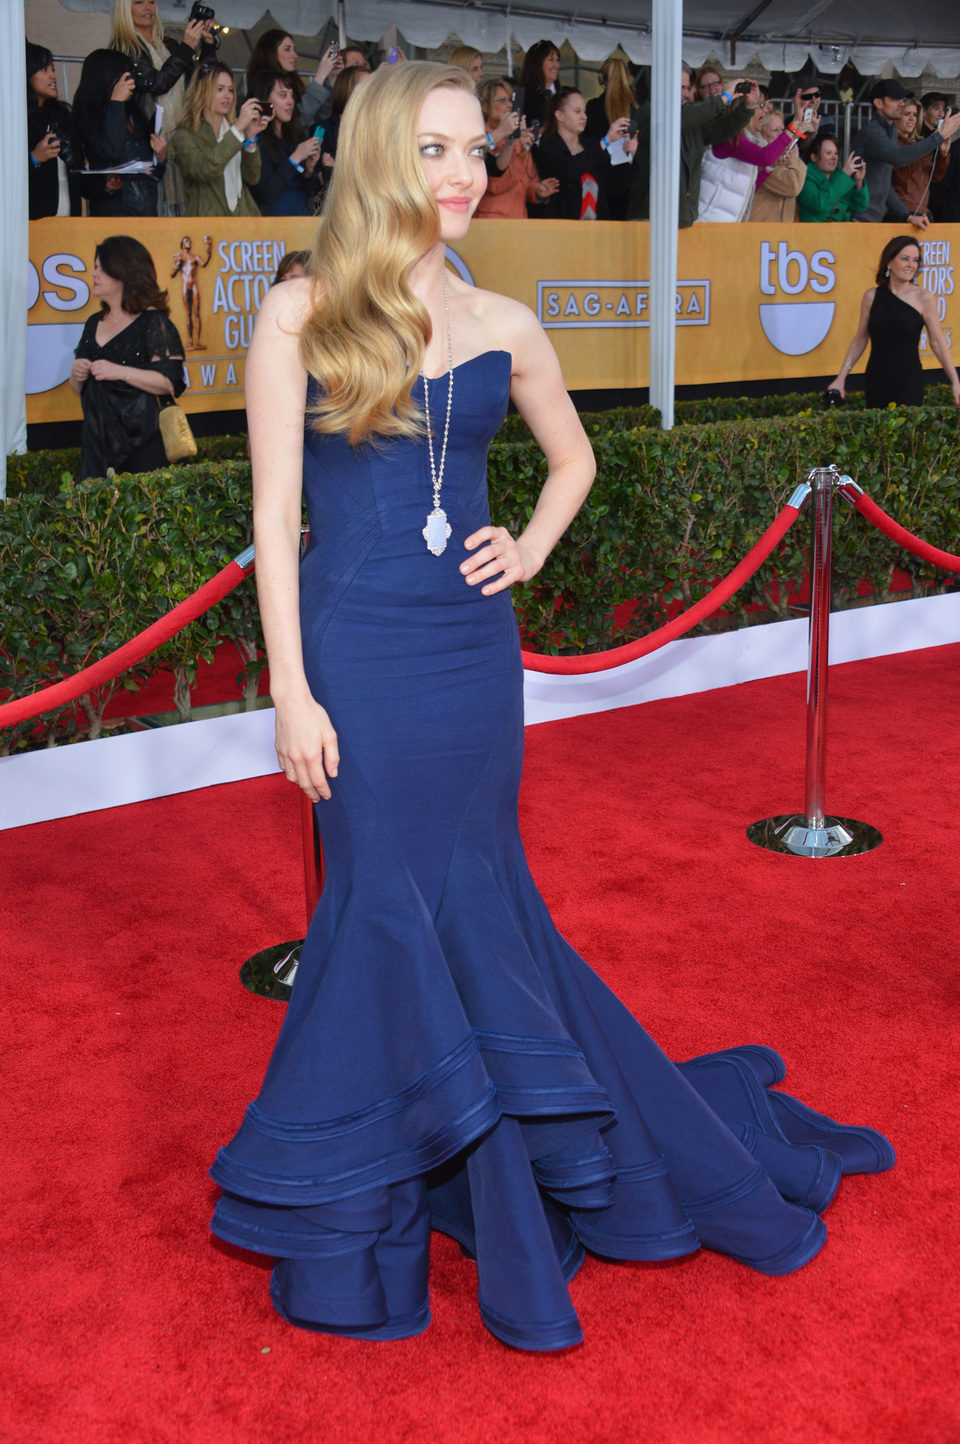 Amanda Seyfried en la alfombra roja de los Screen Actors Guild Awards 2013